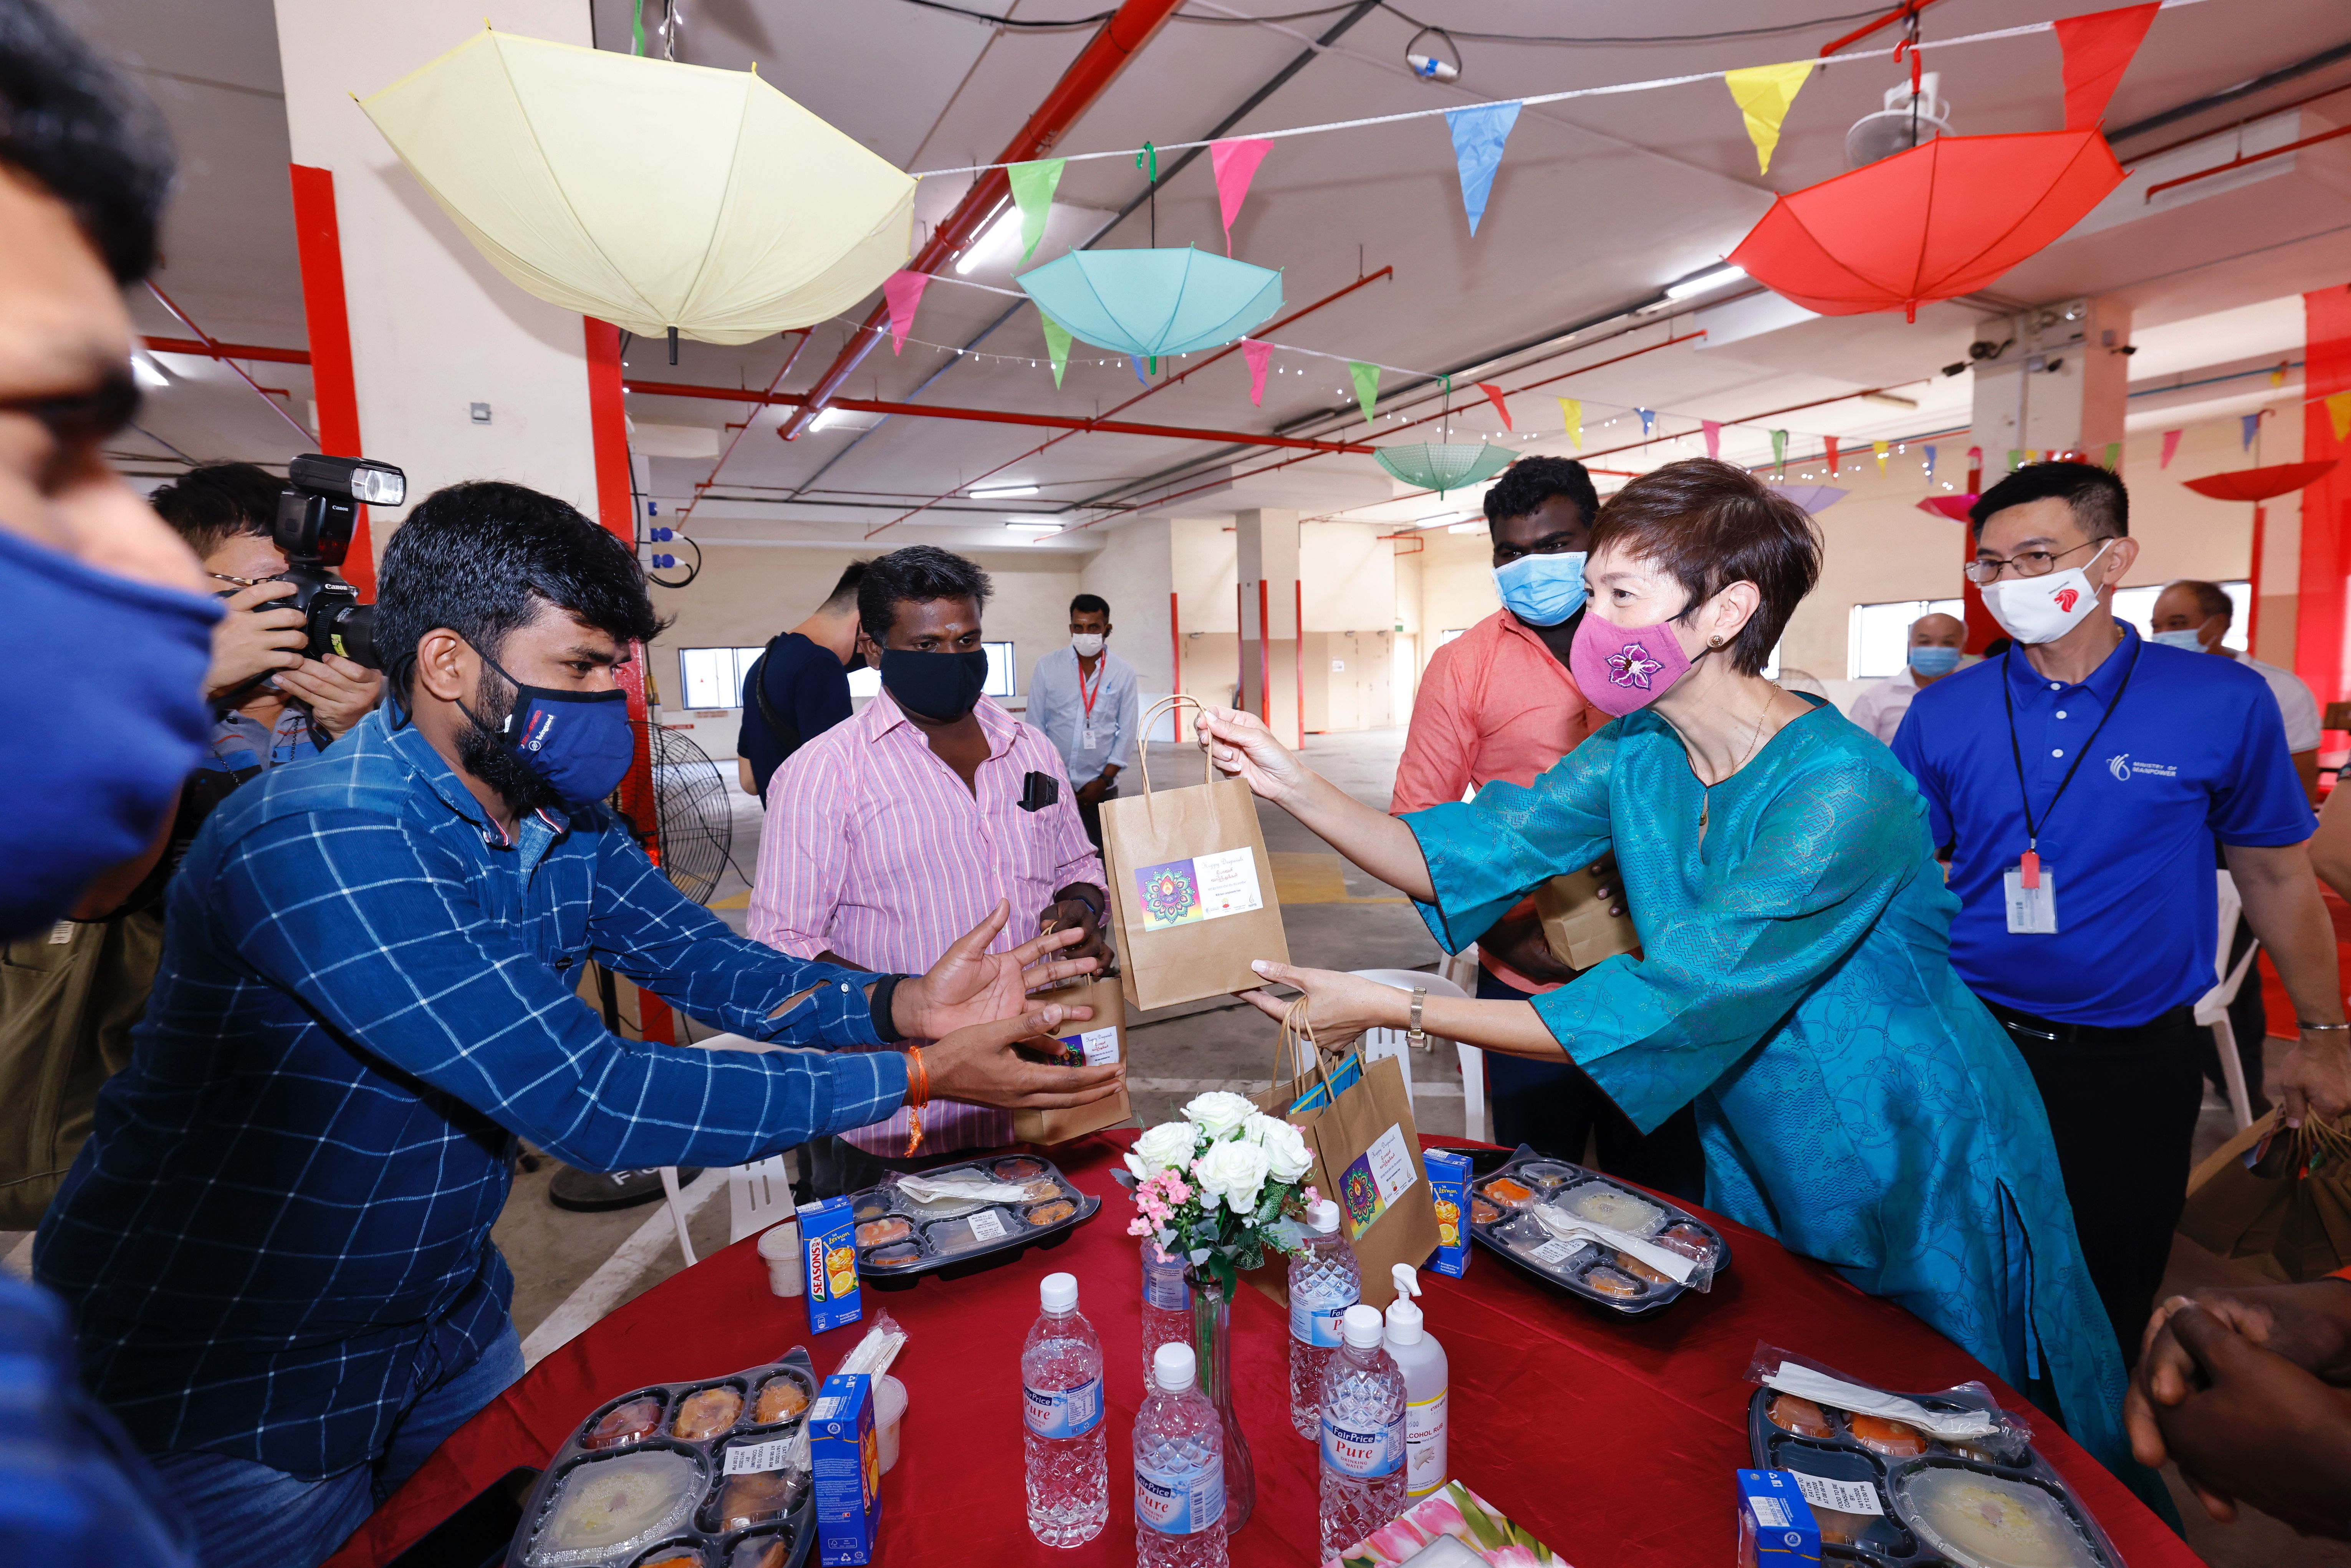 Minister for Manpower Josephine Teo handing festive treats to migrant workers. Photo courtesy: MOM